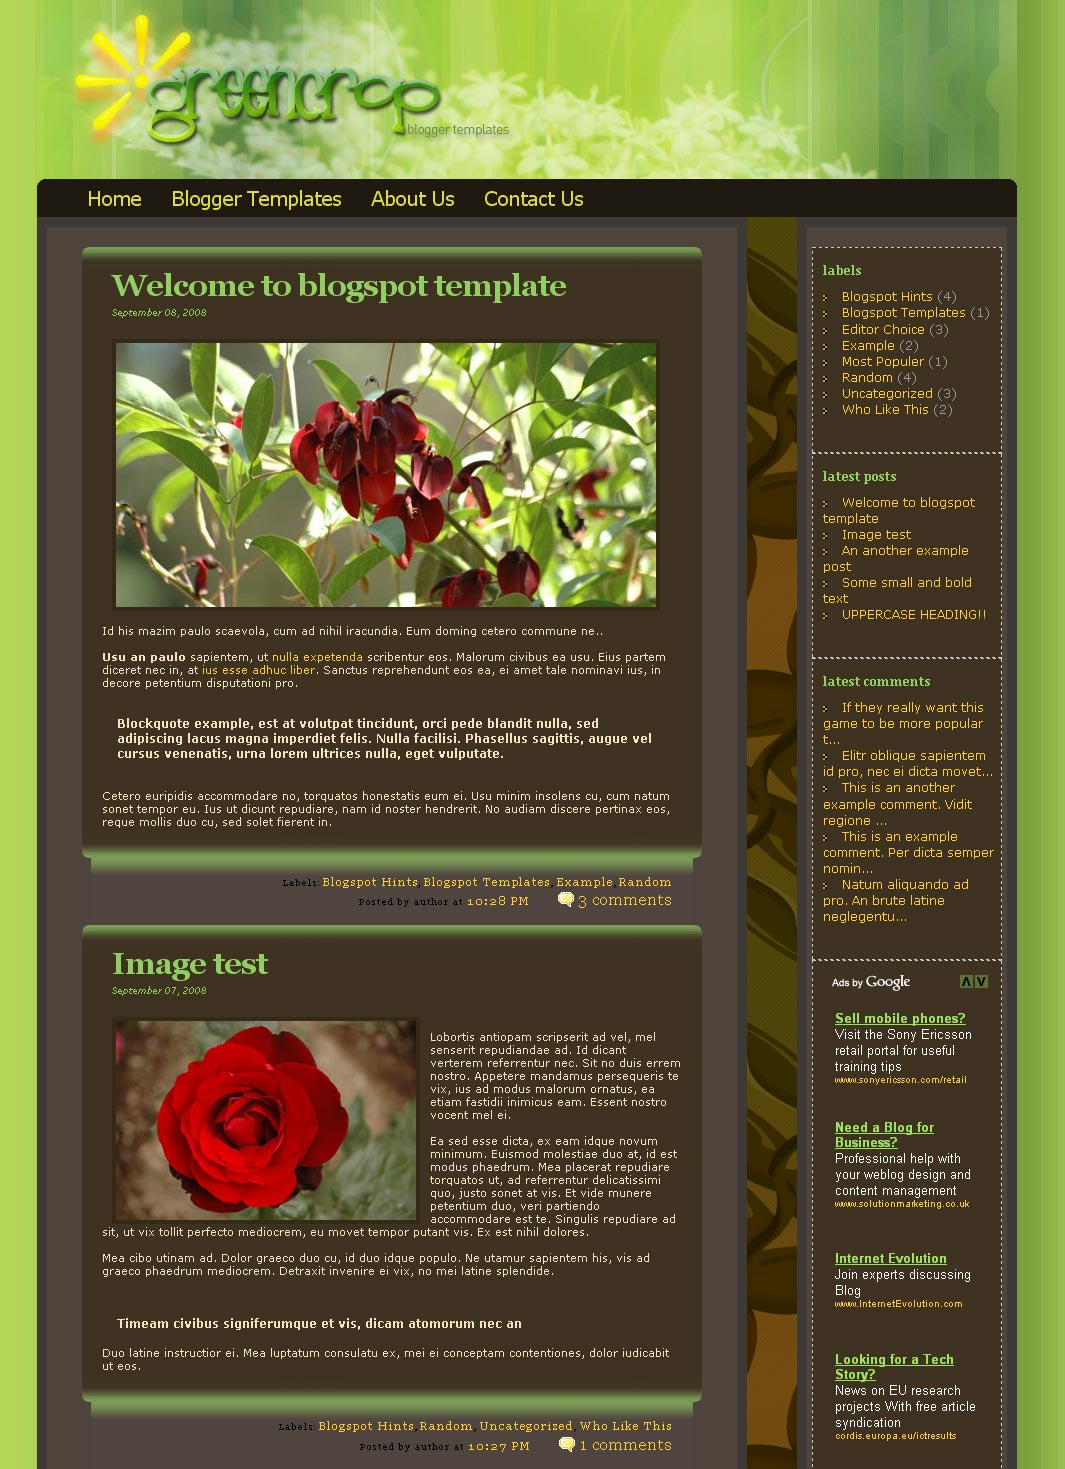 Greencrop Blogger Templates